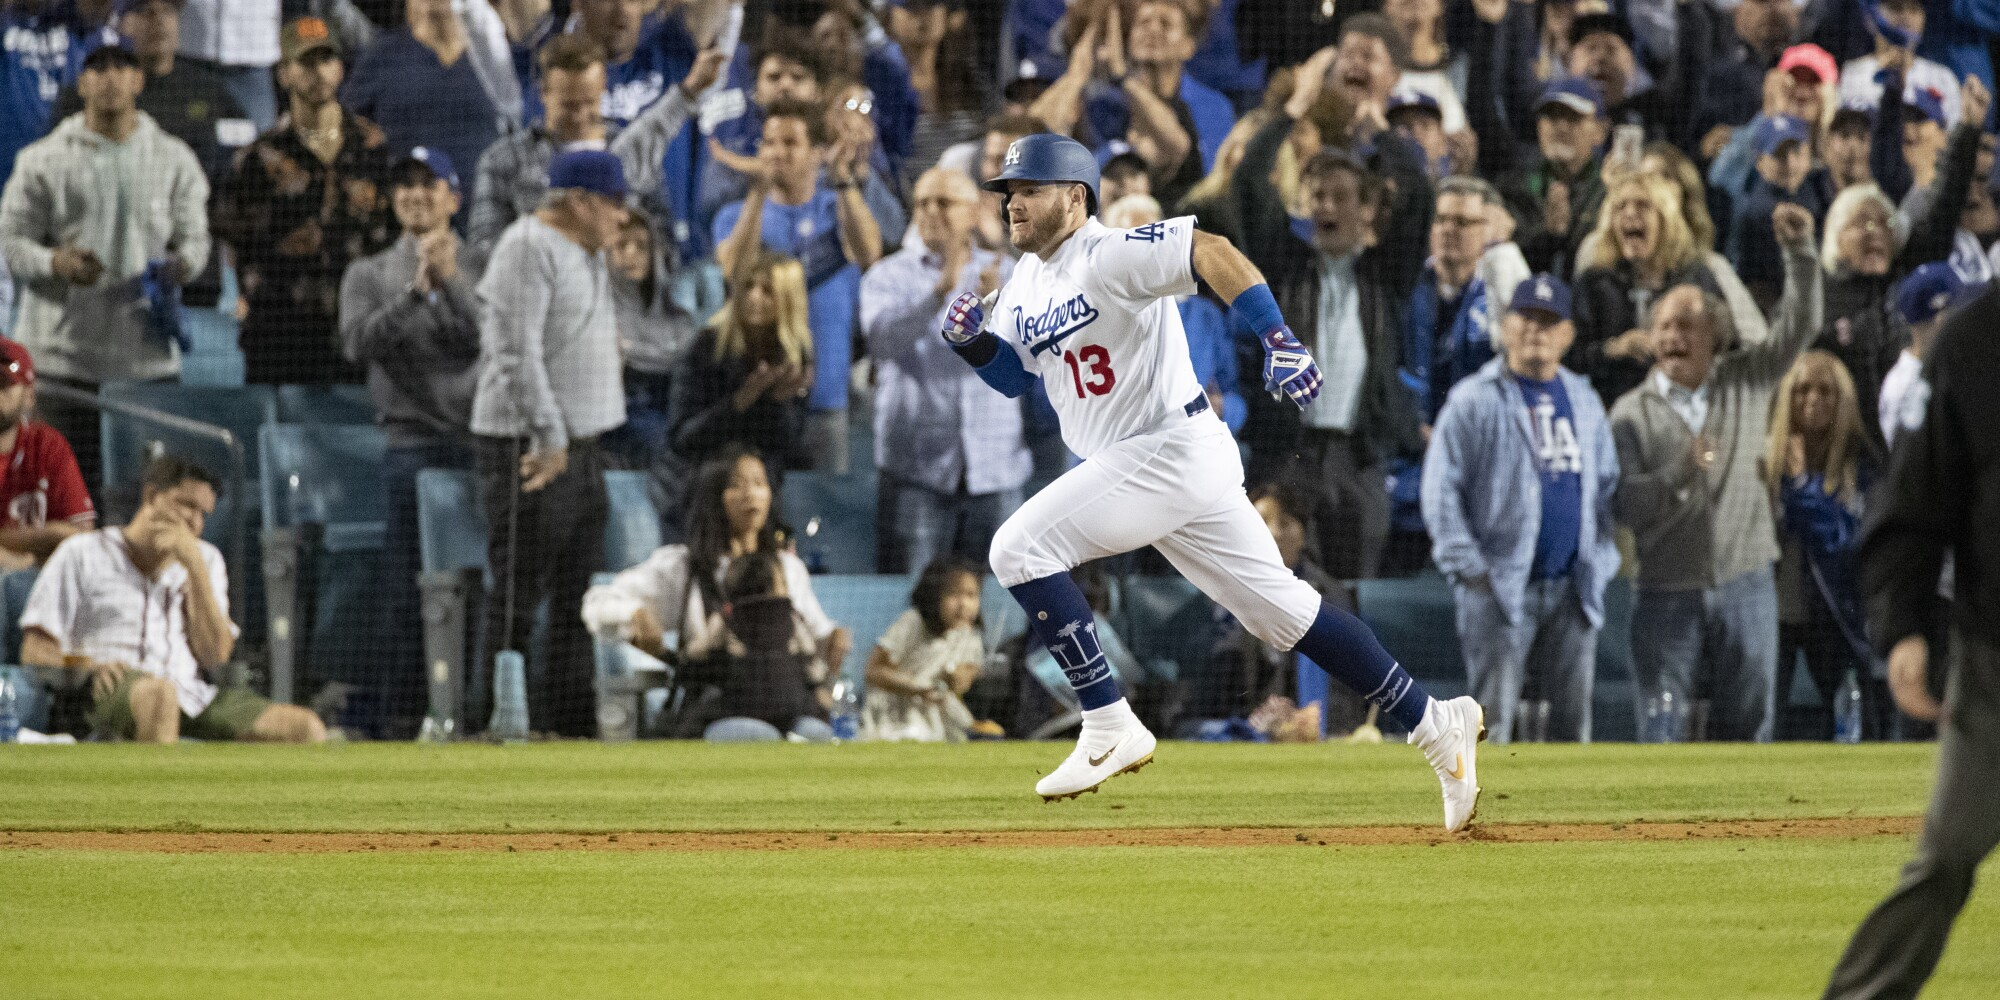 Dodgers second baseman Max Muncy runs after hitting a two-run single to give the Dodgers a 4-0 lead over the Washington Nationals in the seventh inning Thursday.